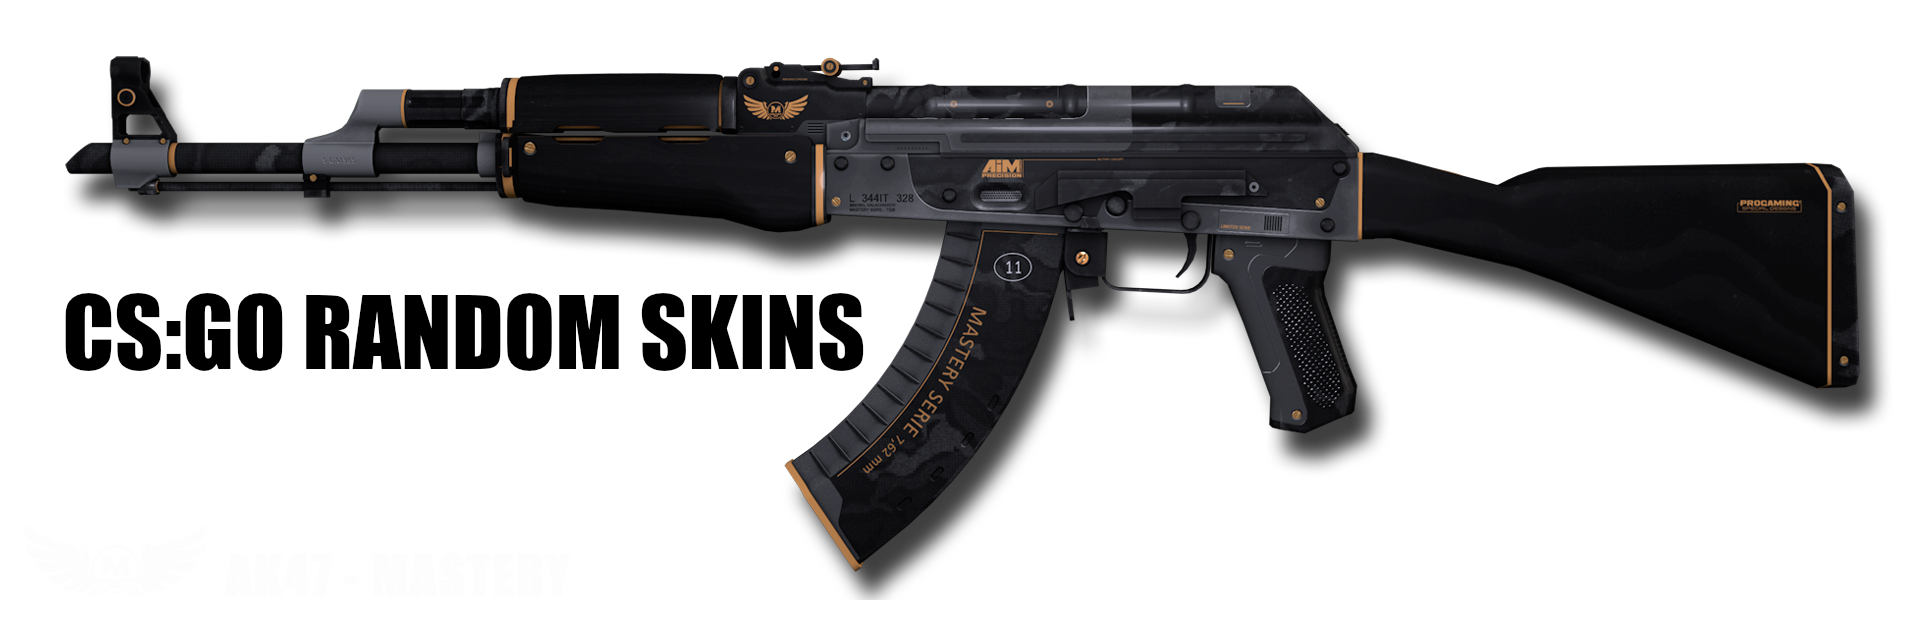 Csgo skins png. Counter strike global offensive